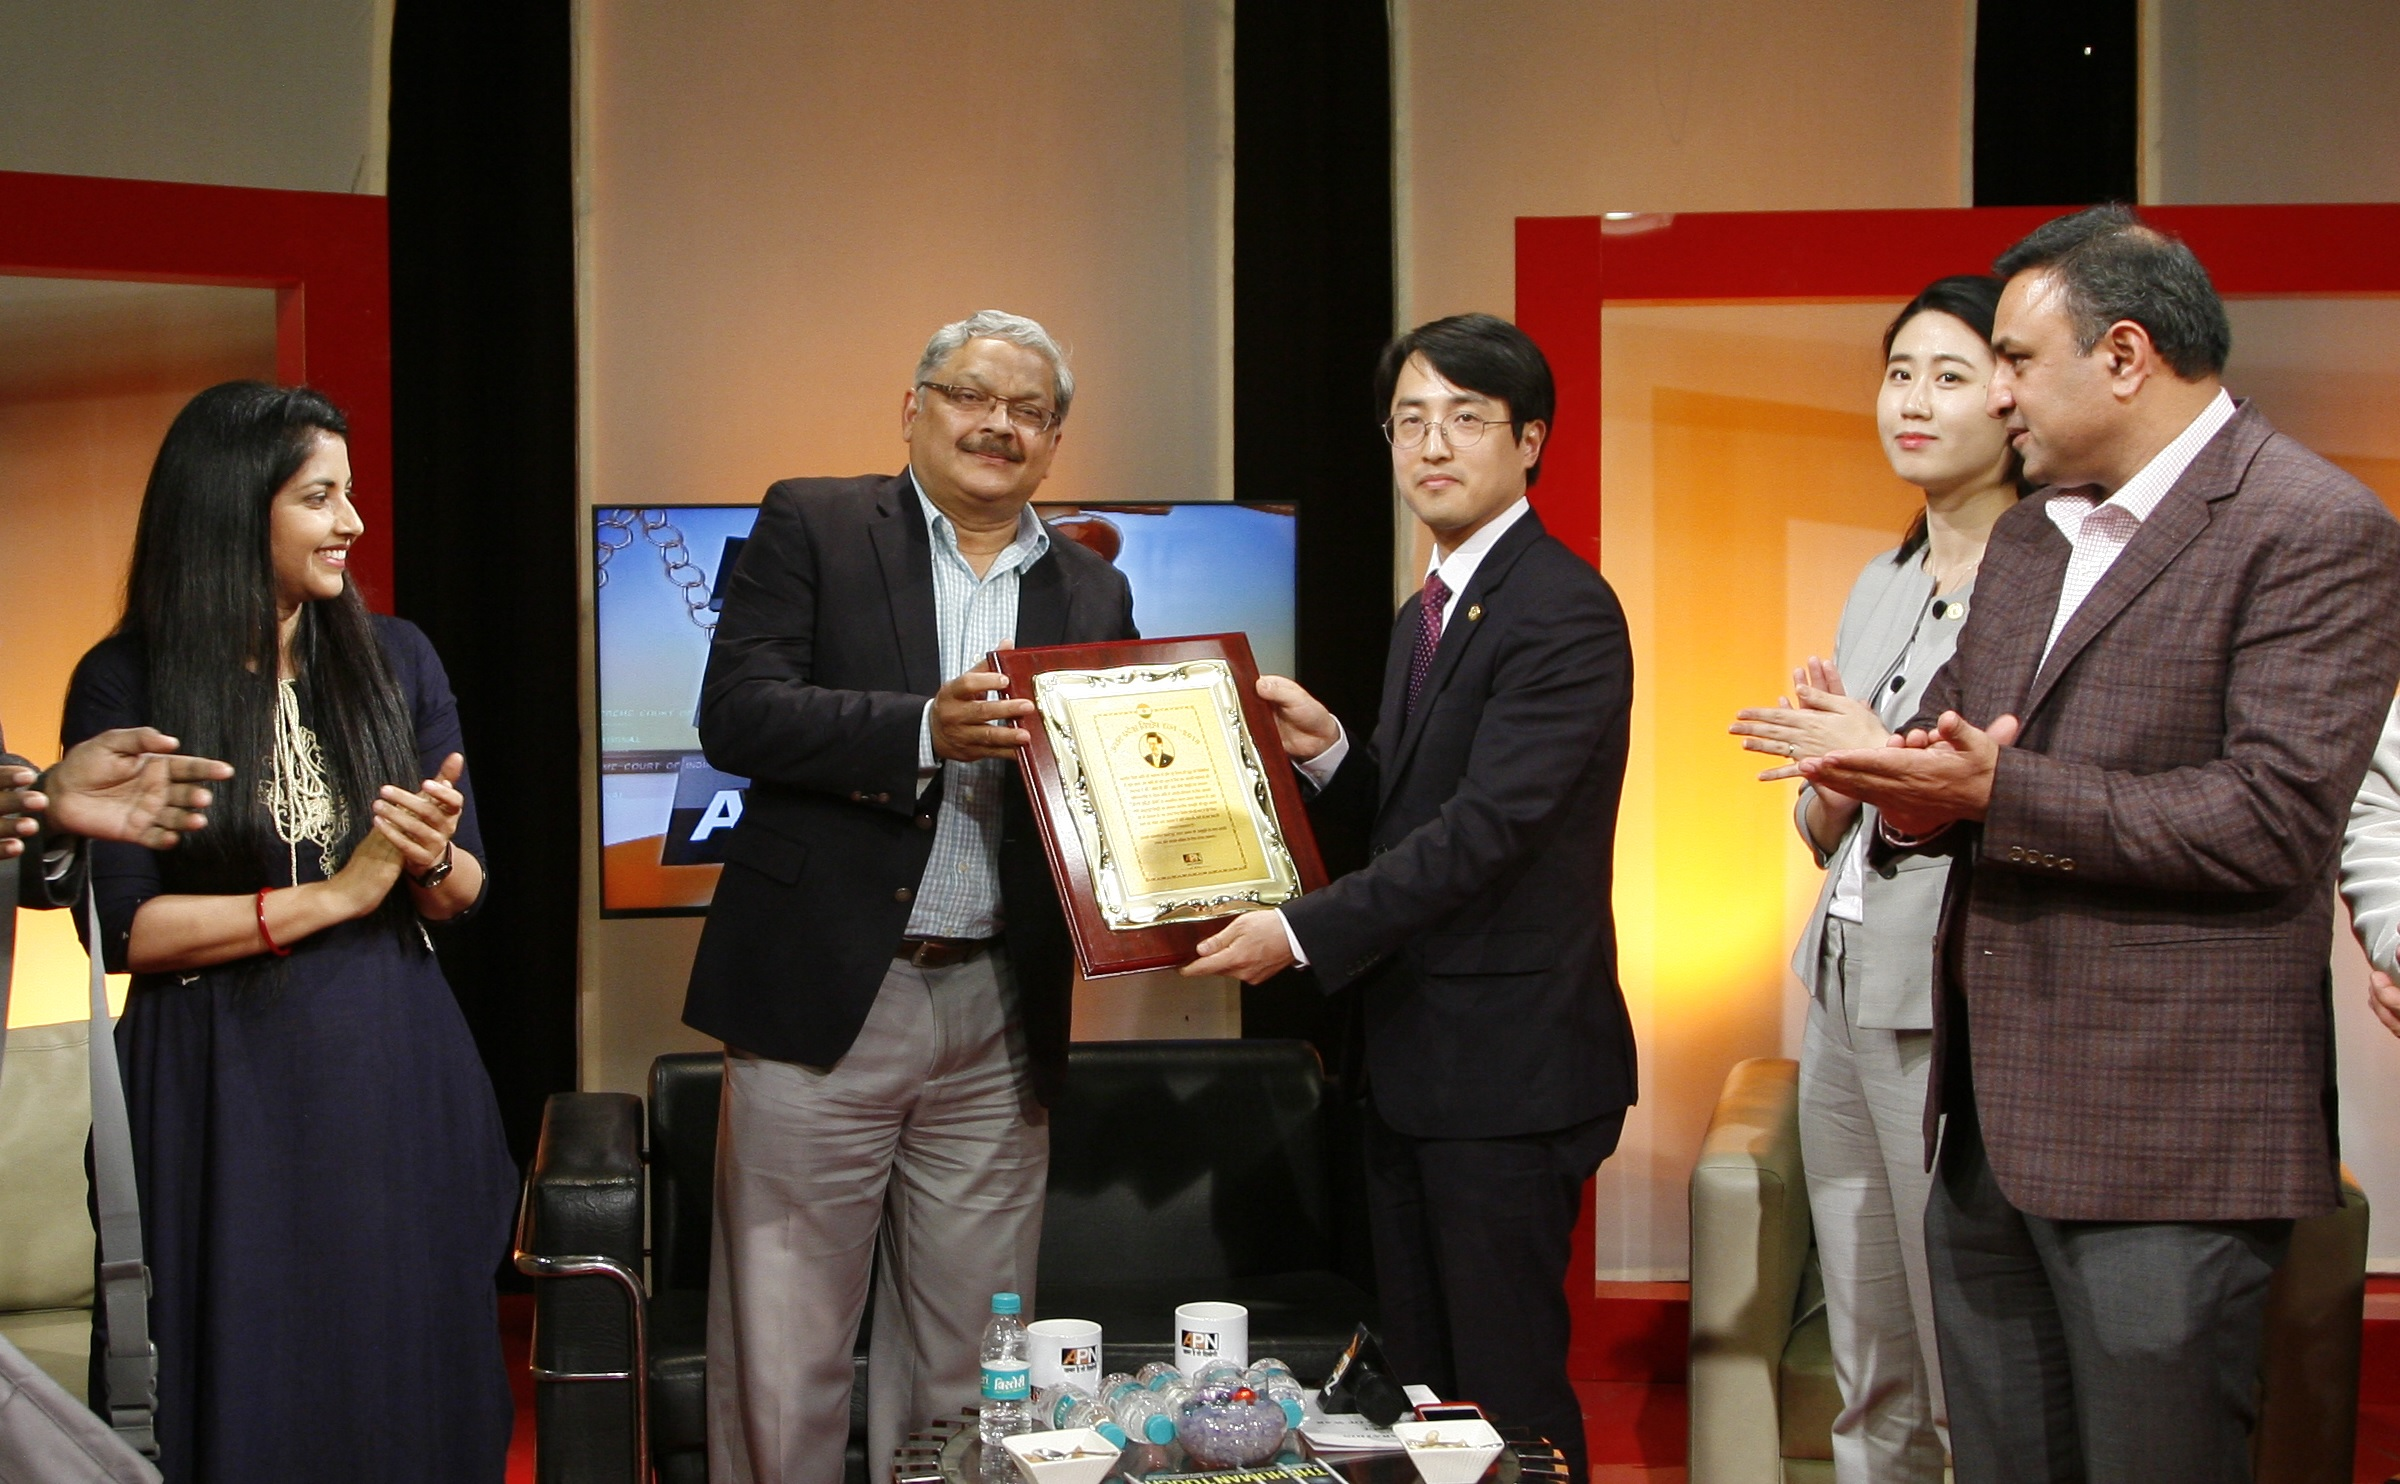 Man Lee Hee – man fighting for global peace honored with UP Ratna